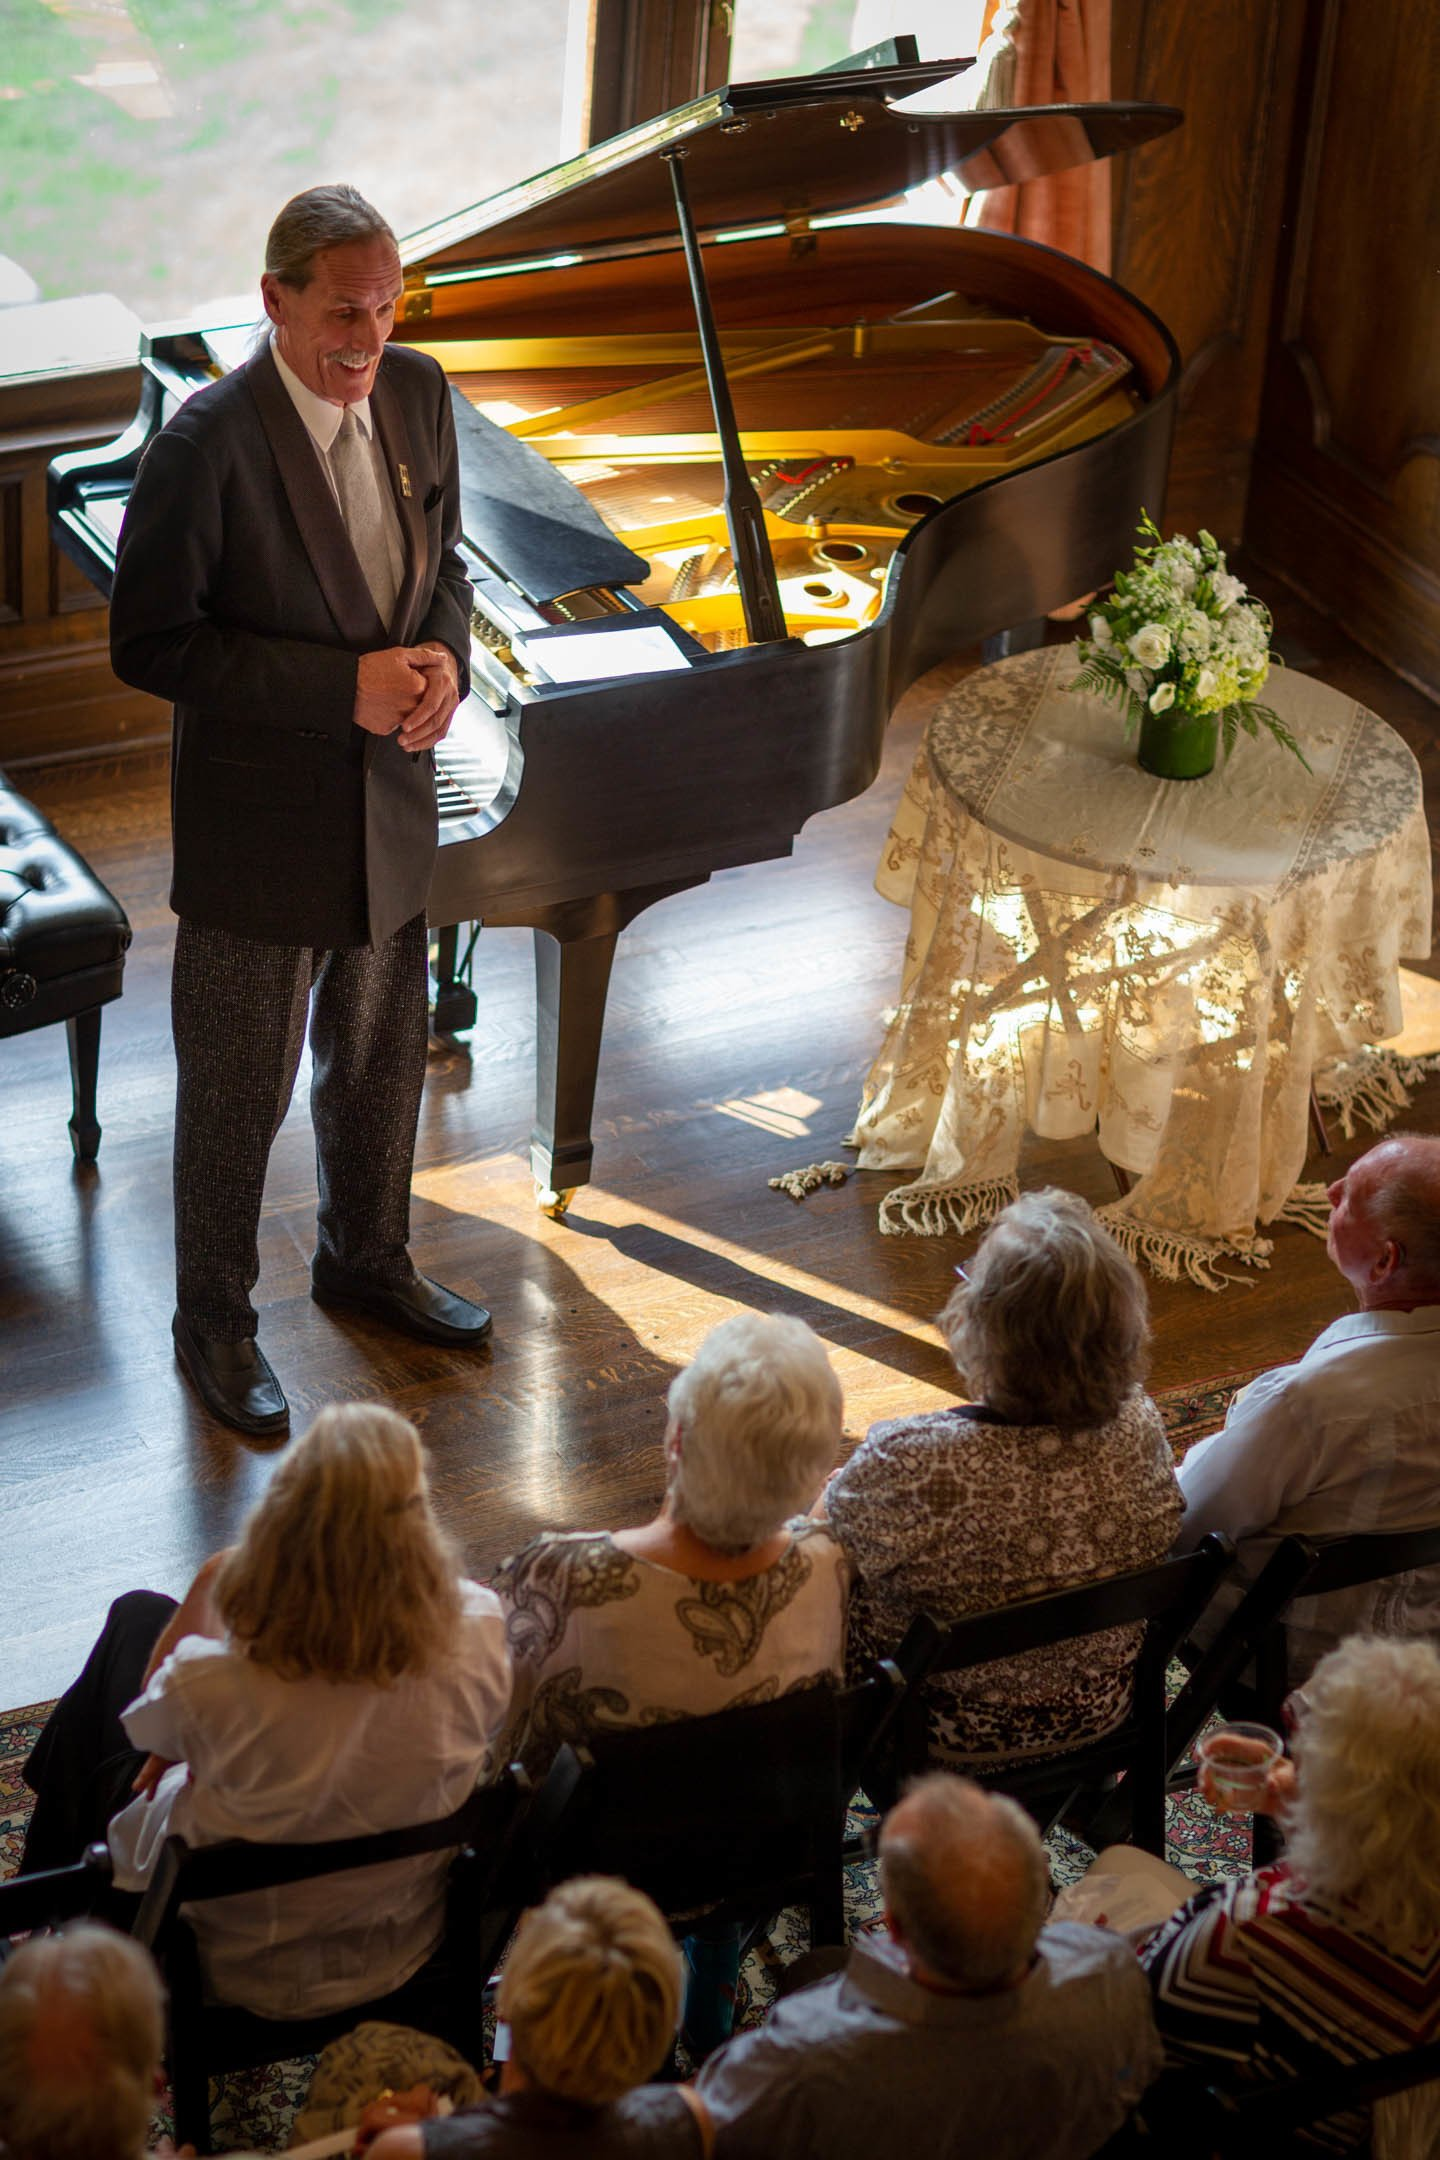 Th e late Robin Sutherland addresses an intimate audience for an August 2019 concert at the Redstone Castle. Photo by Klaus Klocher